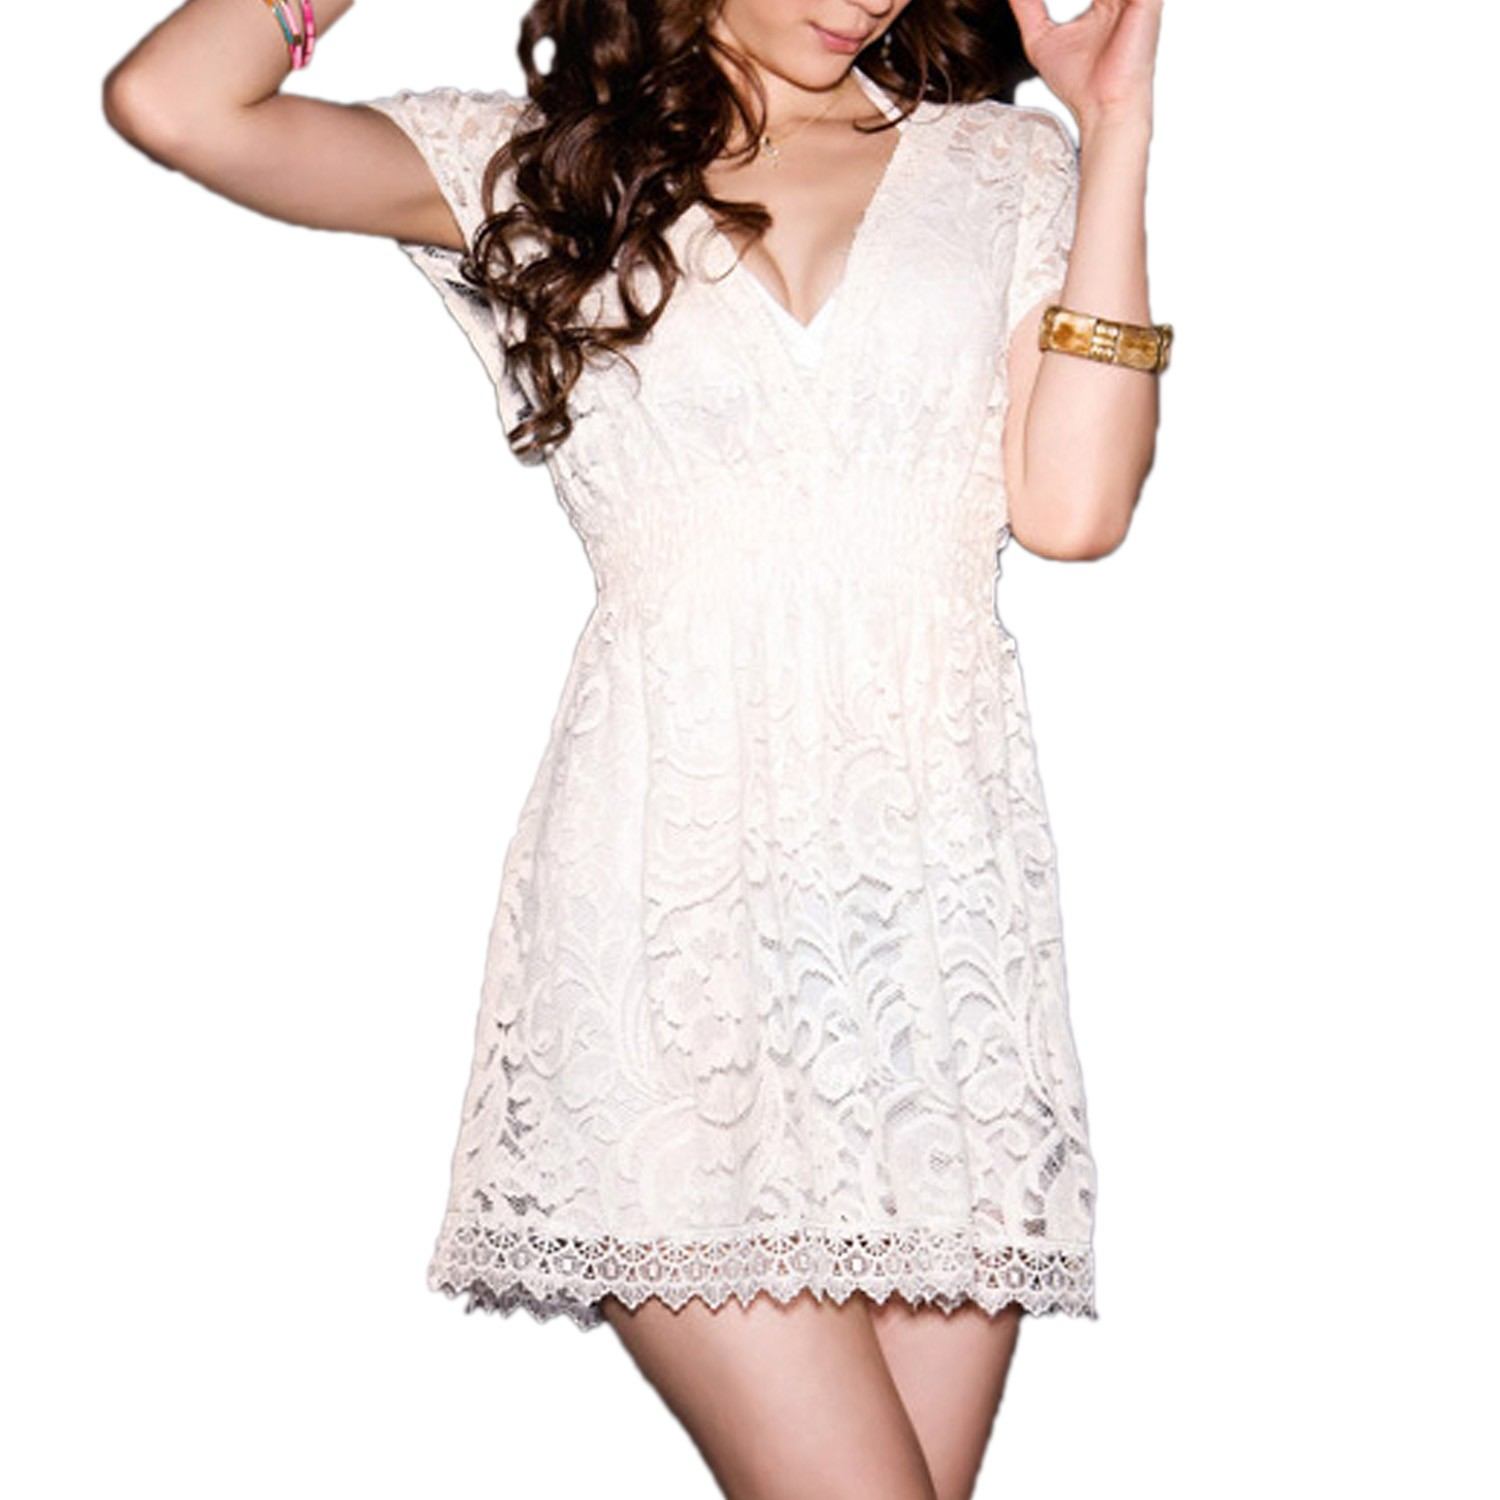 Beige New Sexy Lace Womens Tunic Mini Dress Size S